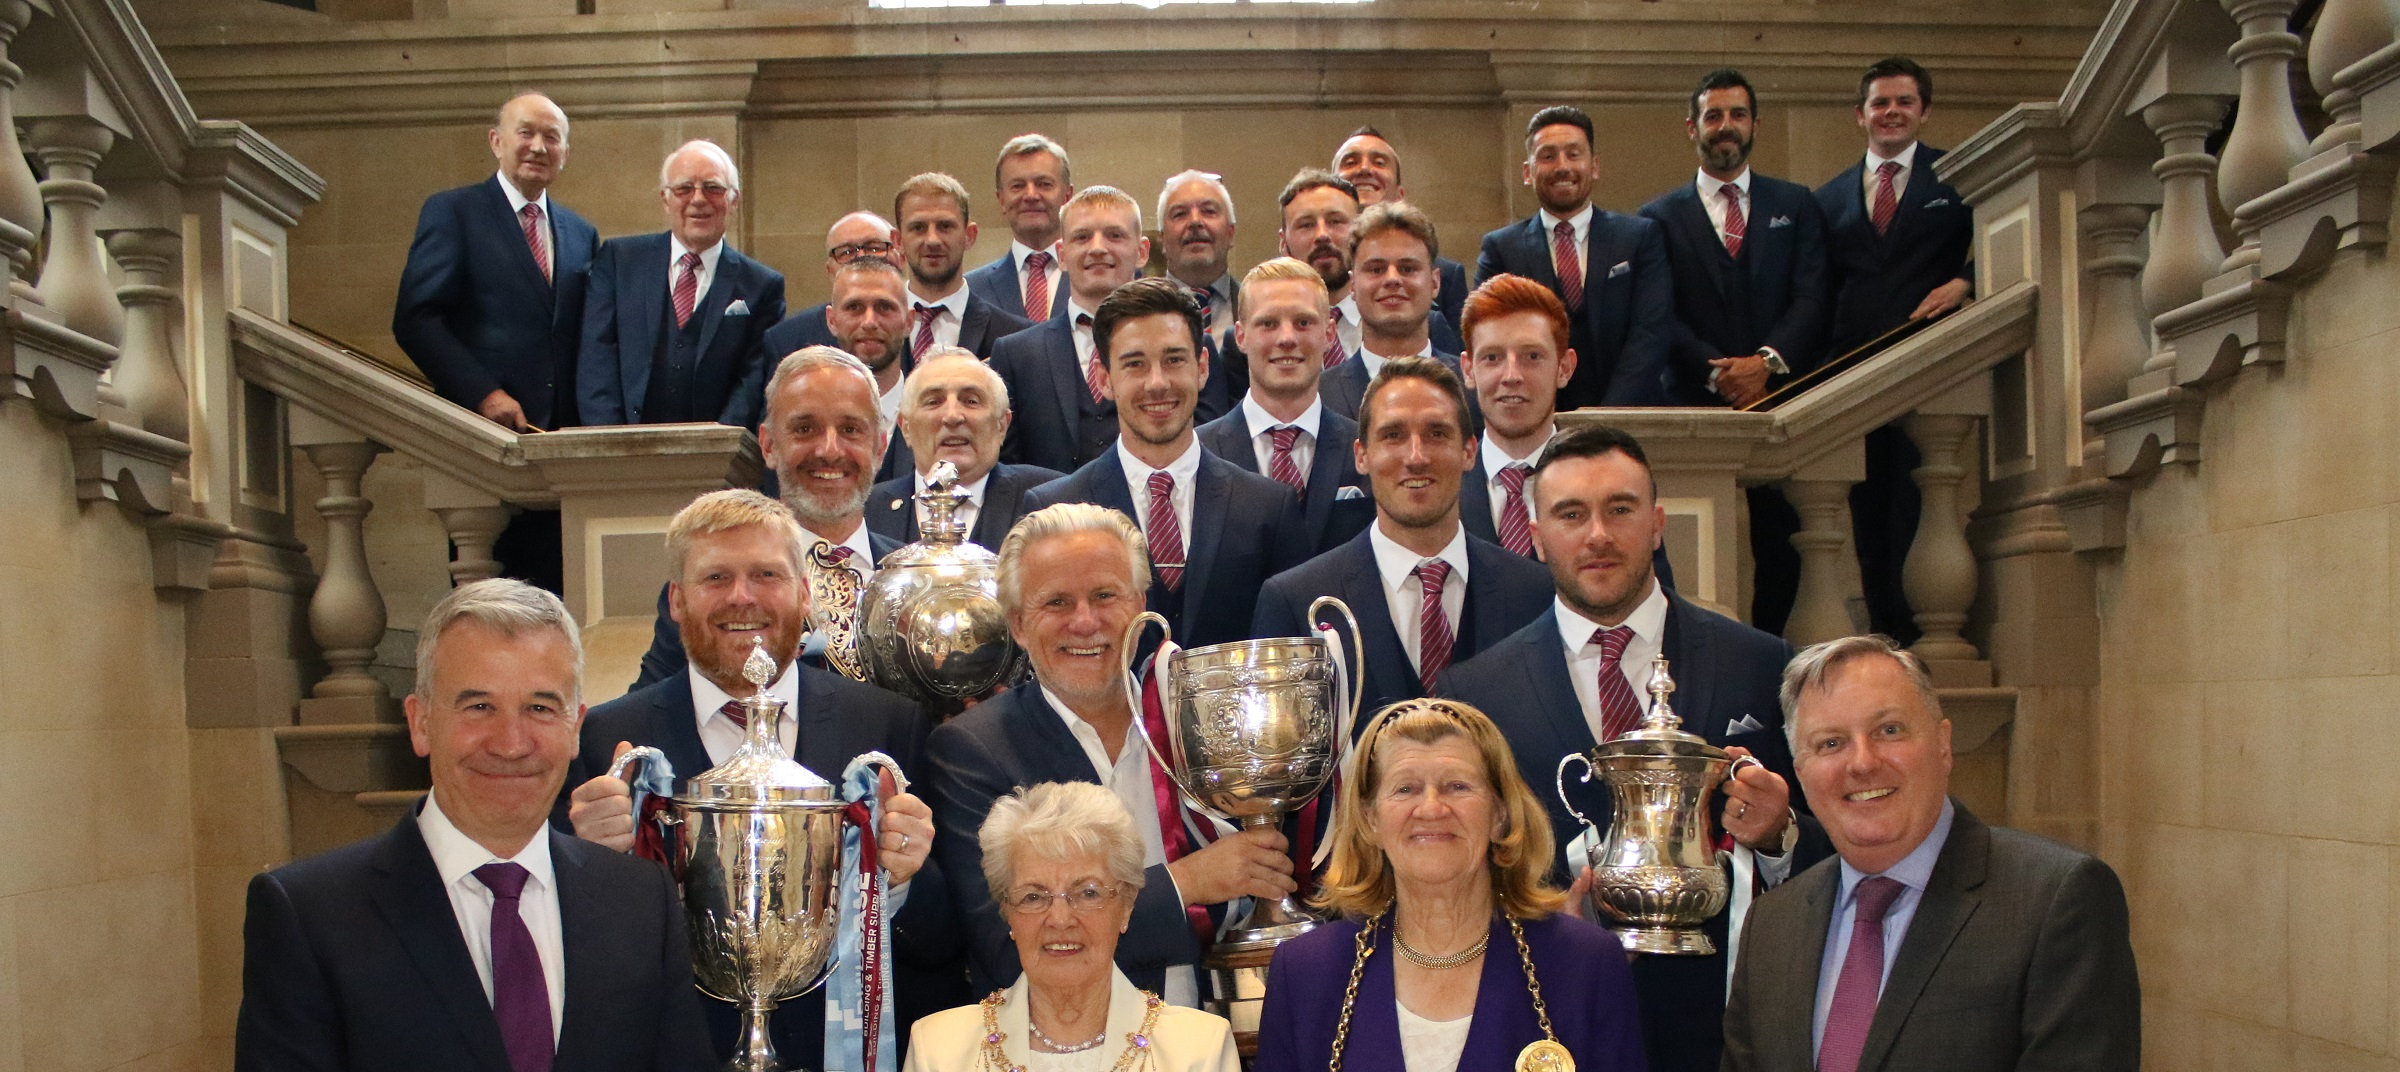 Club receives civic reception at South Shields Town Hall